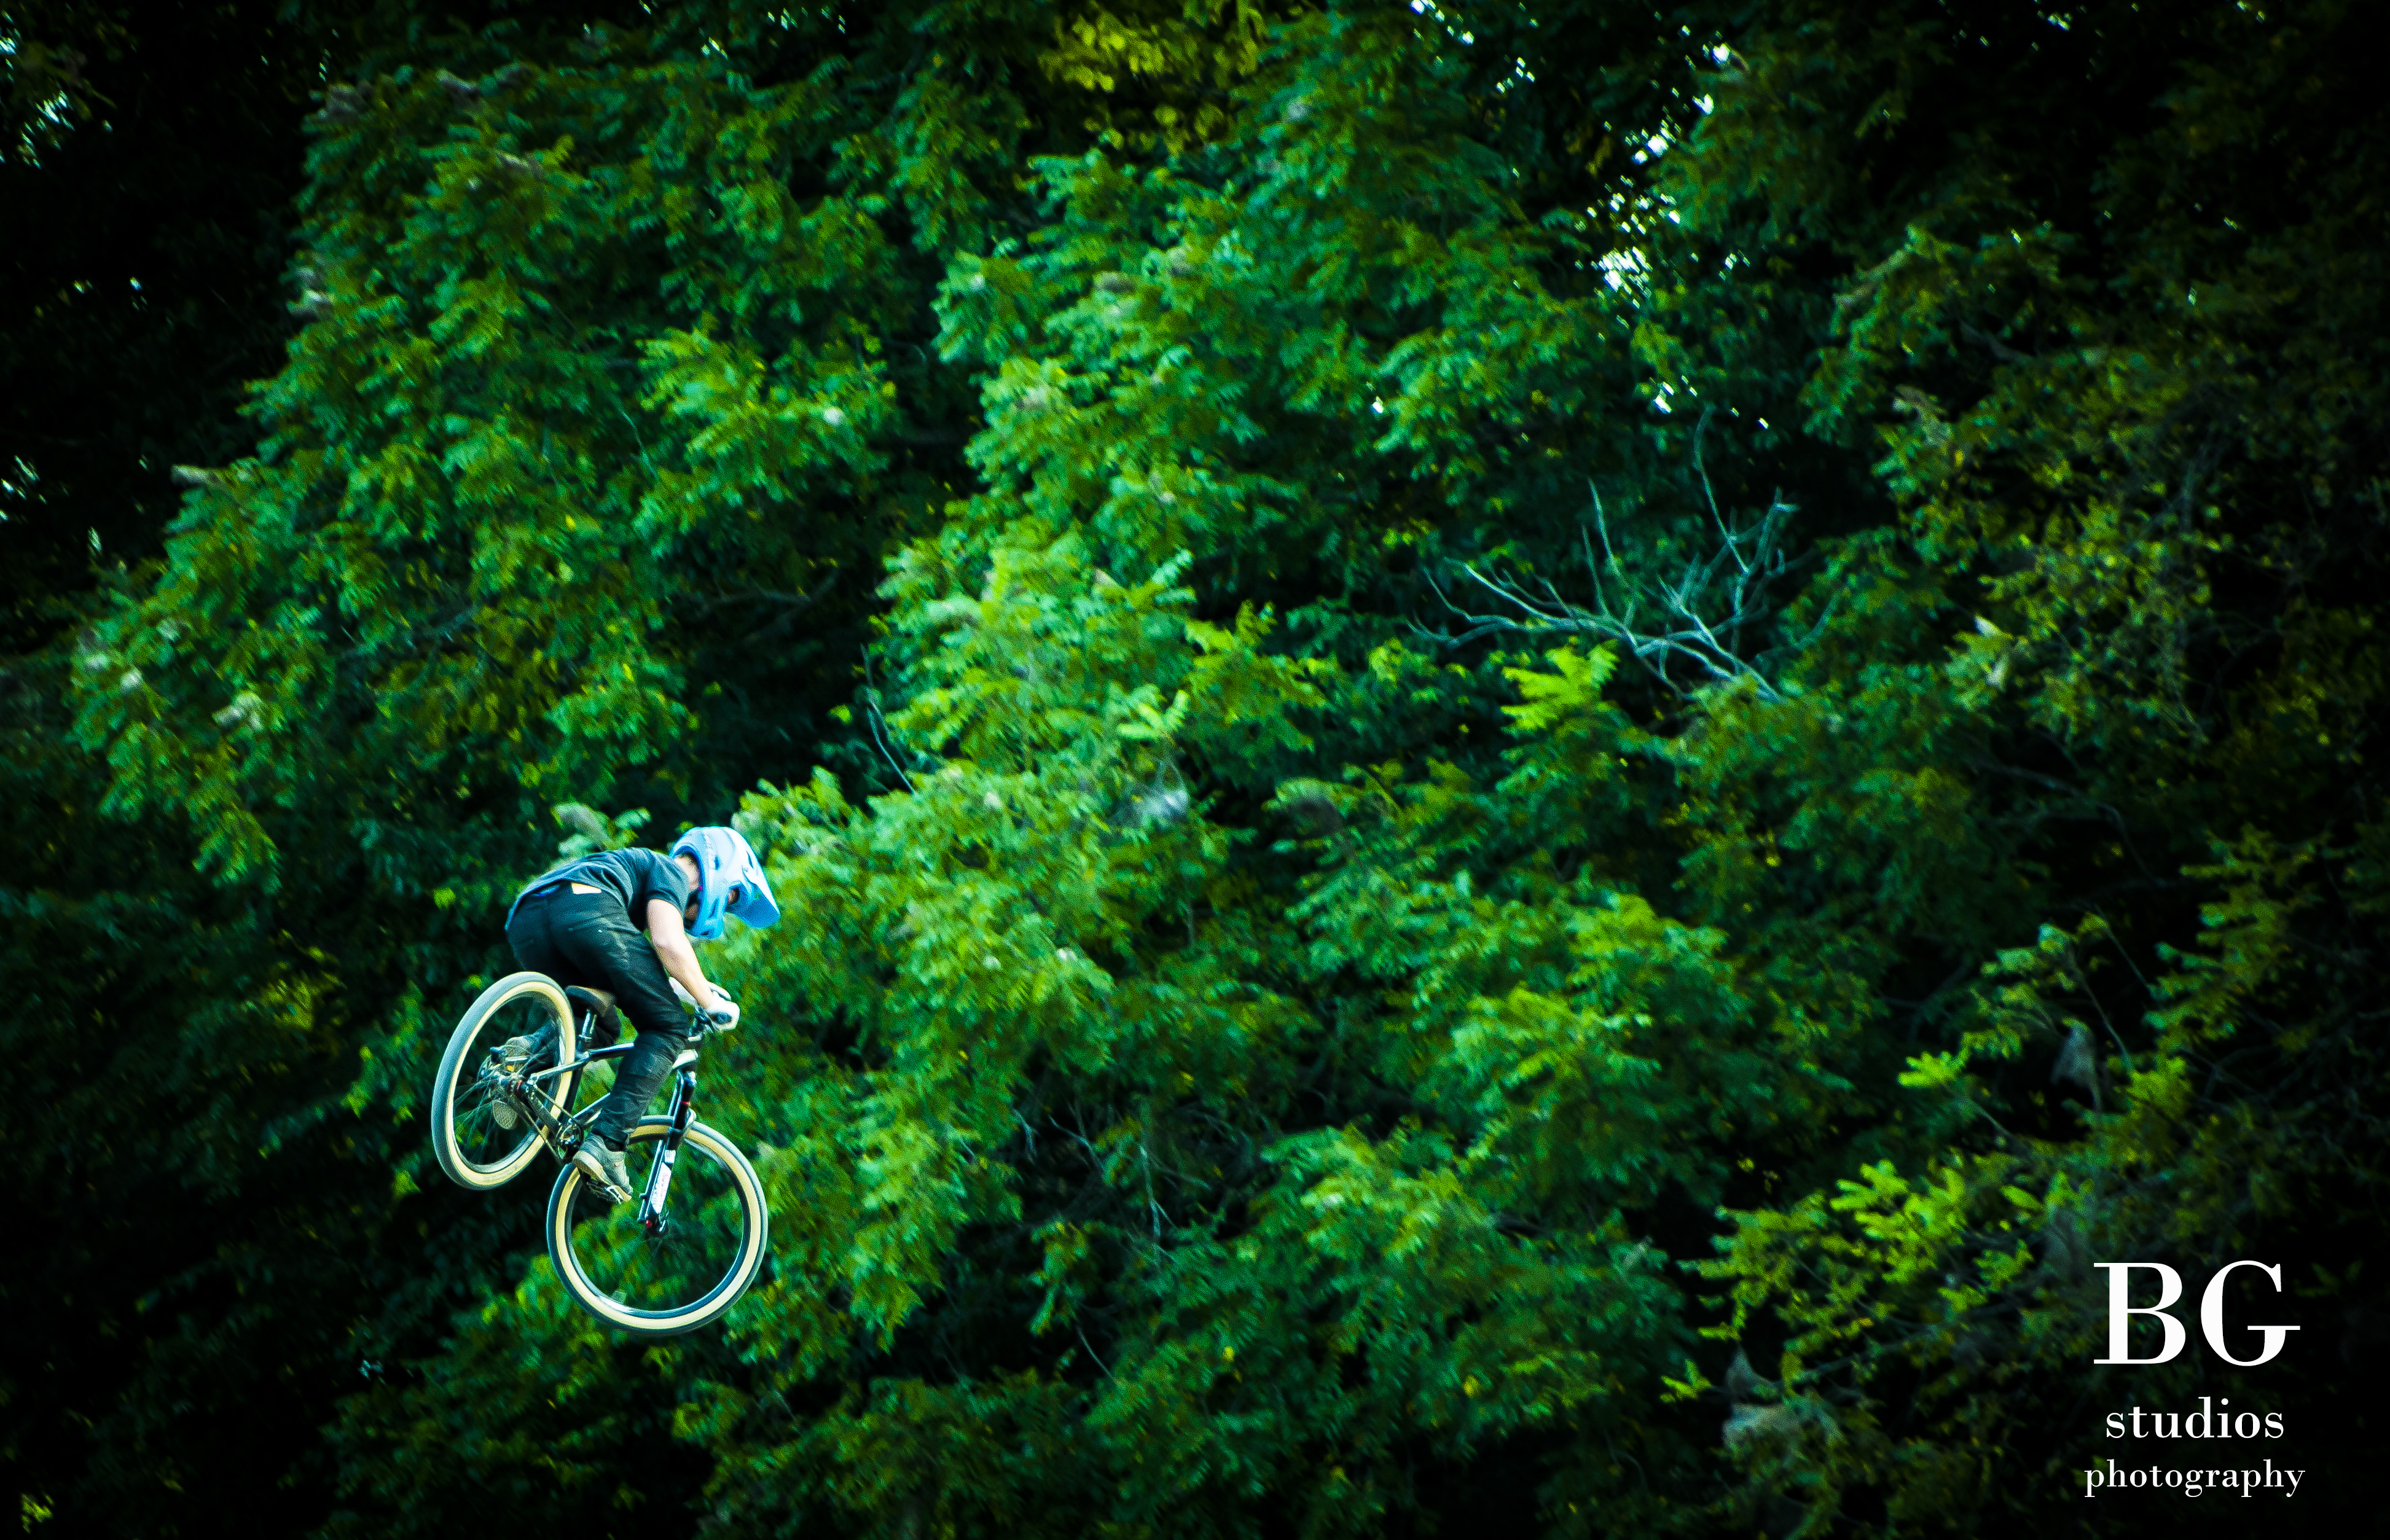 Jumping in the trees watermarked